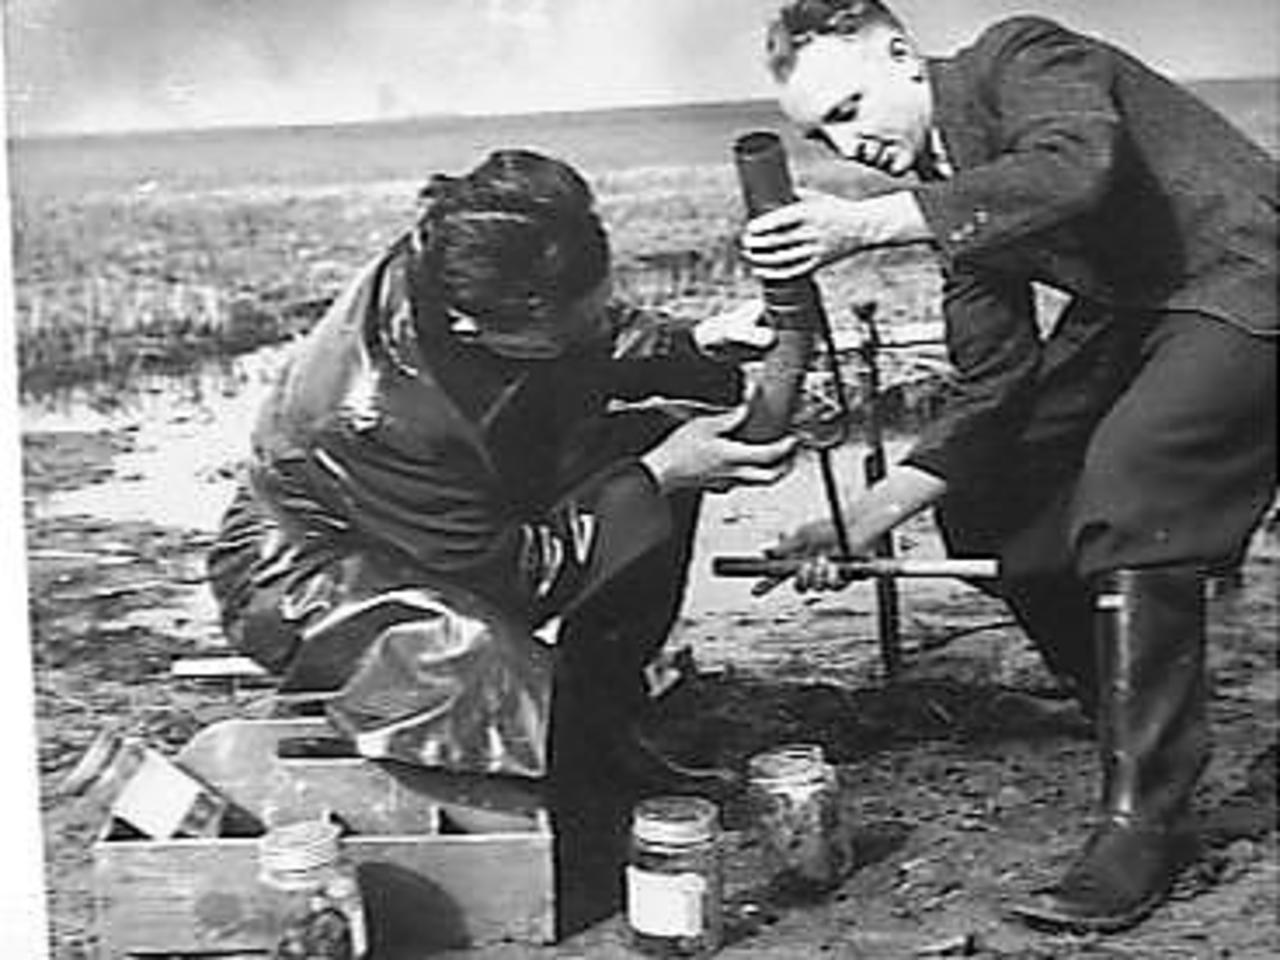 Research in 'Laboratory Noordoostpolder'. Taking soil samples, 1943.